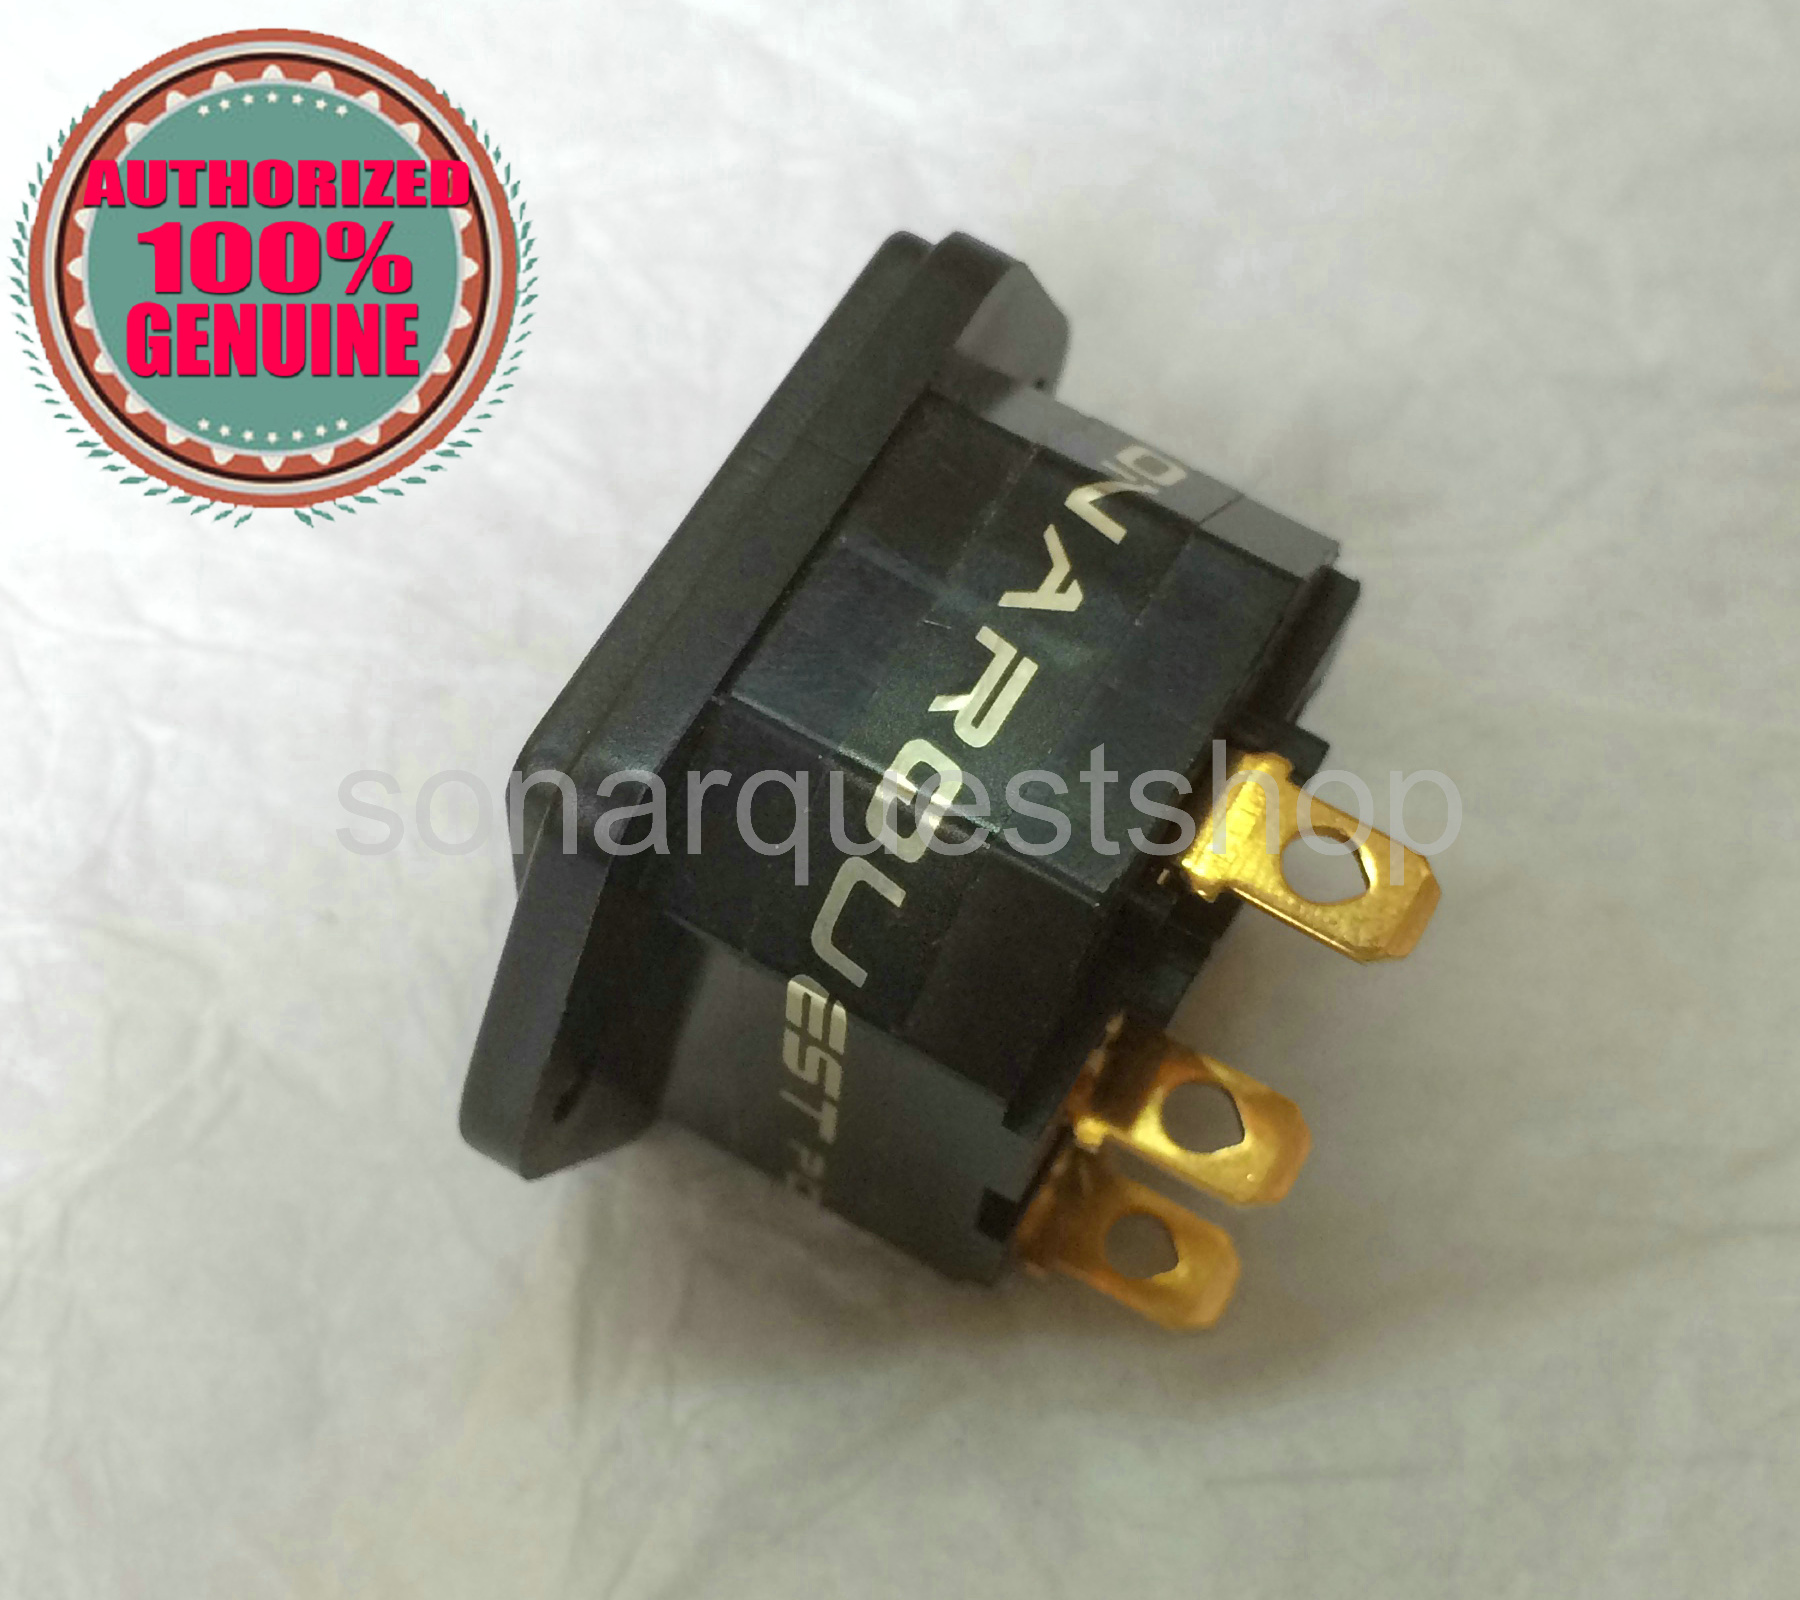 SONARQUET 24K Gold Plated IEC Inlet, fuseholder,Inlets Connector Power